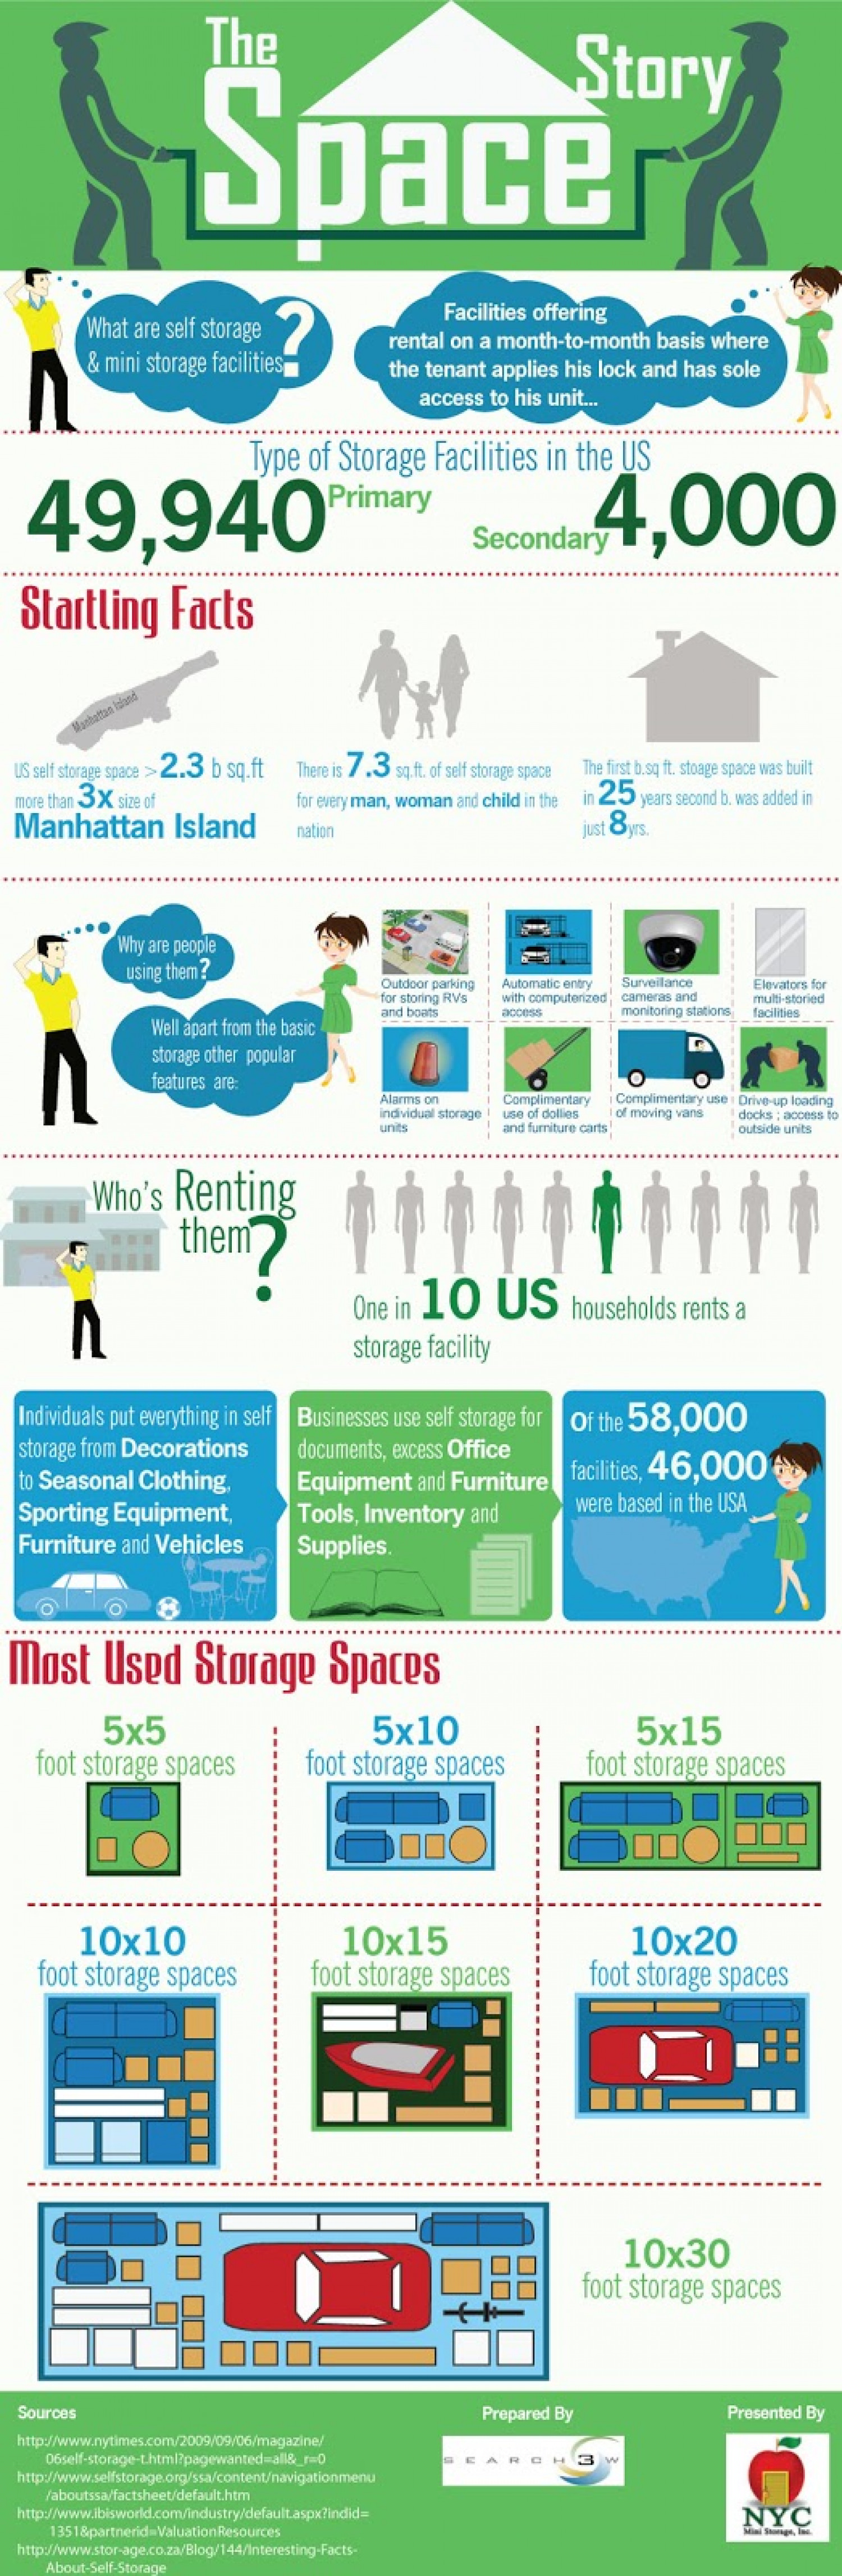 """Infographic on """"The Space Story"""" around Storage Industry in the US. Infographic"""